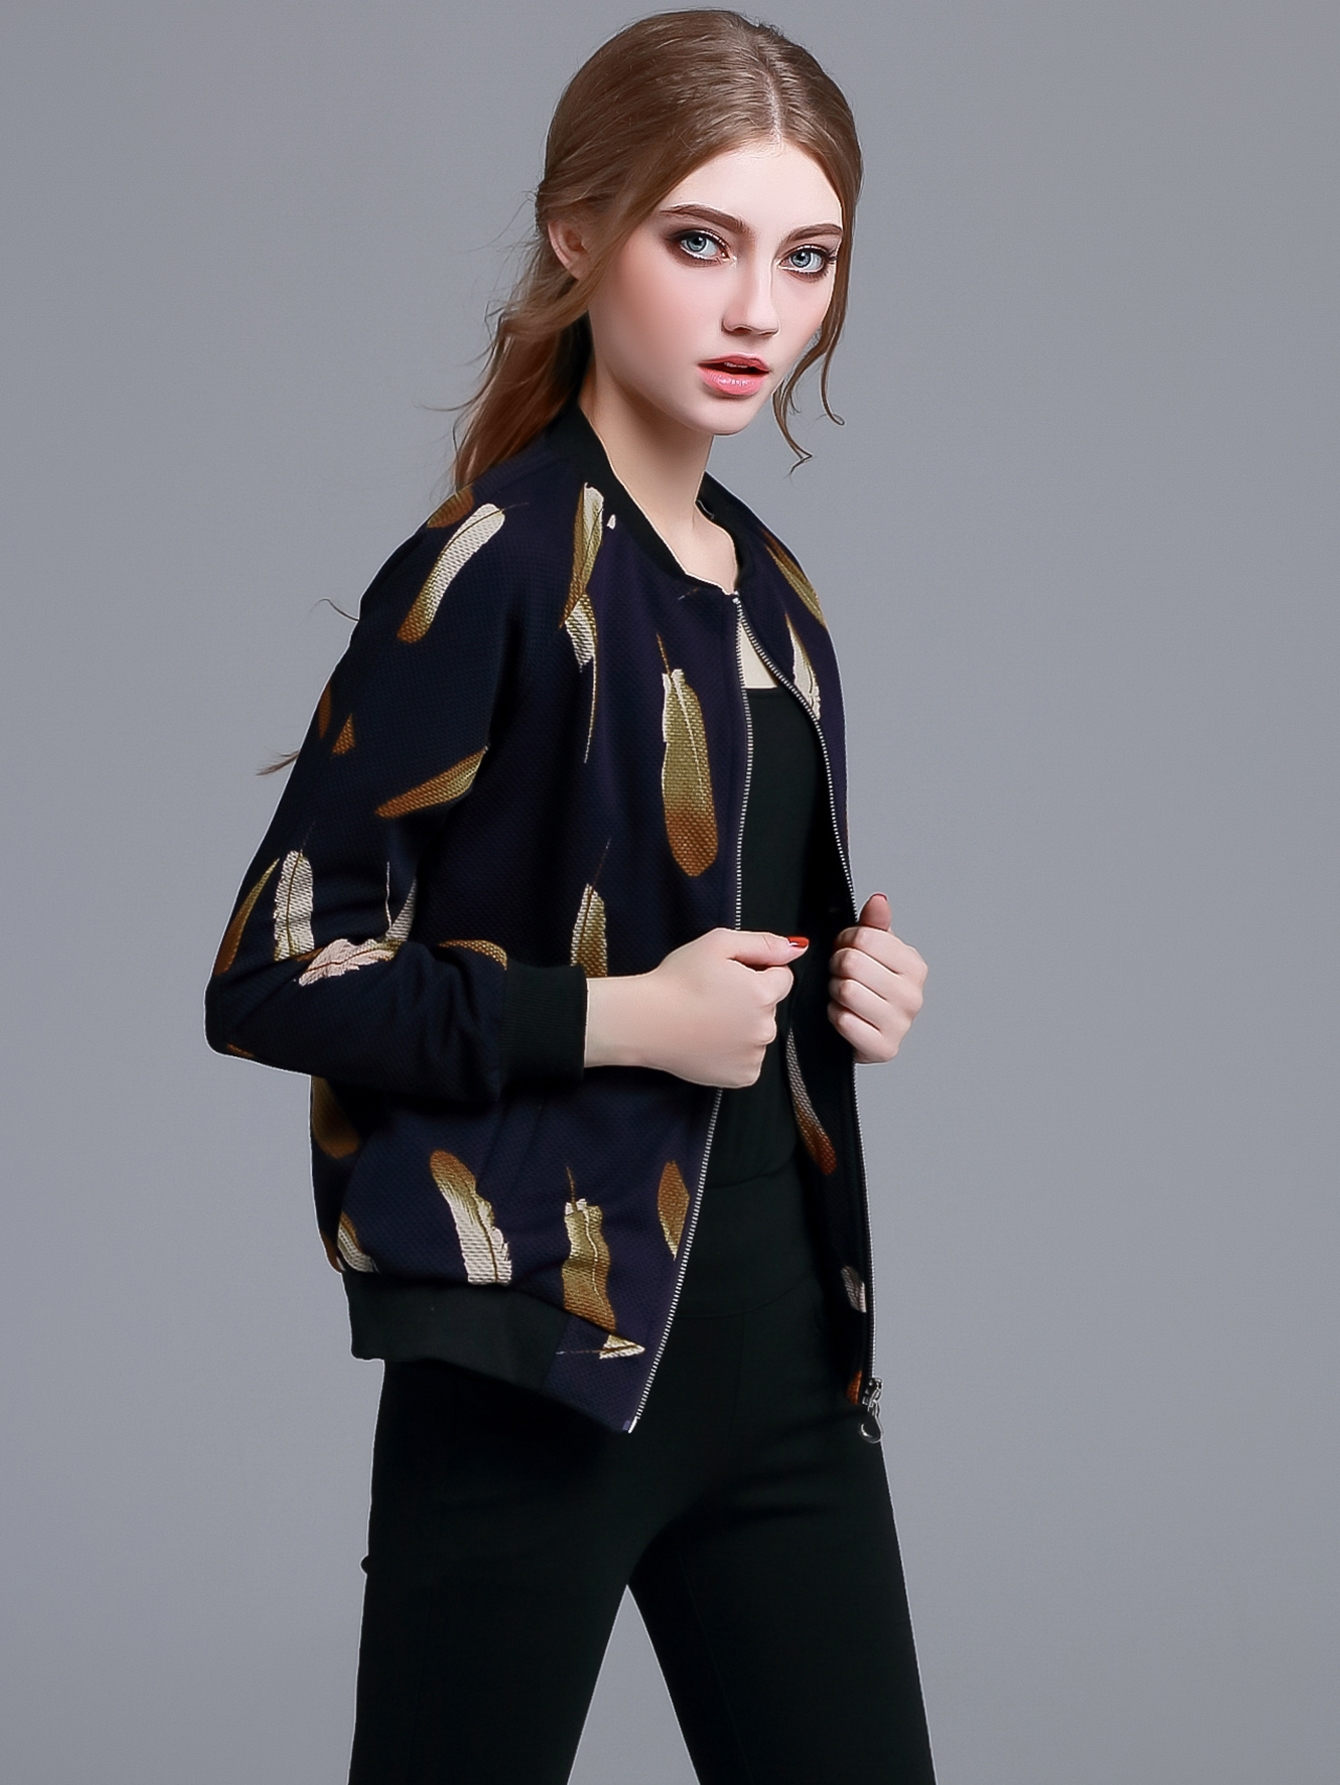 29.99$  Buy here - http://diwsu.justgood.pw/go.php?t=8579 - Navy Feather Print Zipper Front Jacket 29.99$